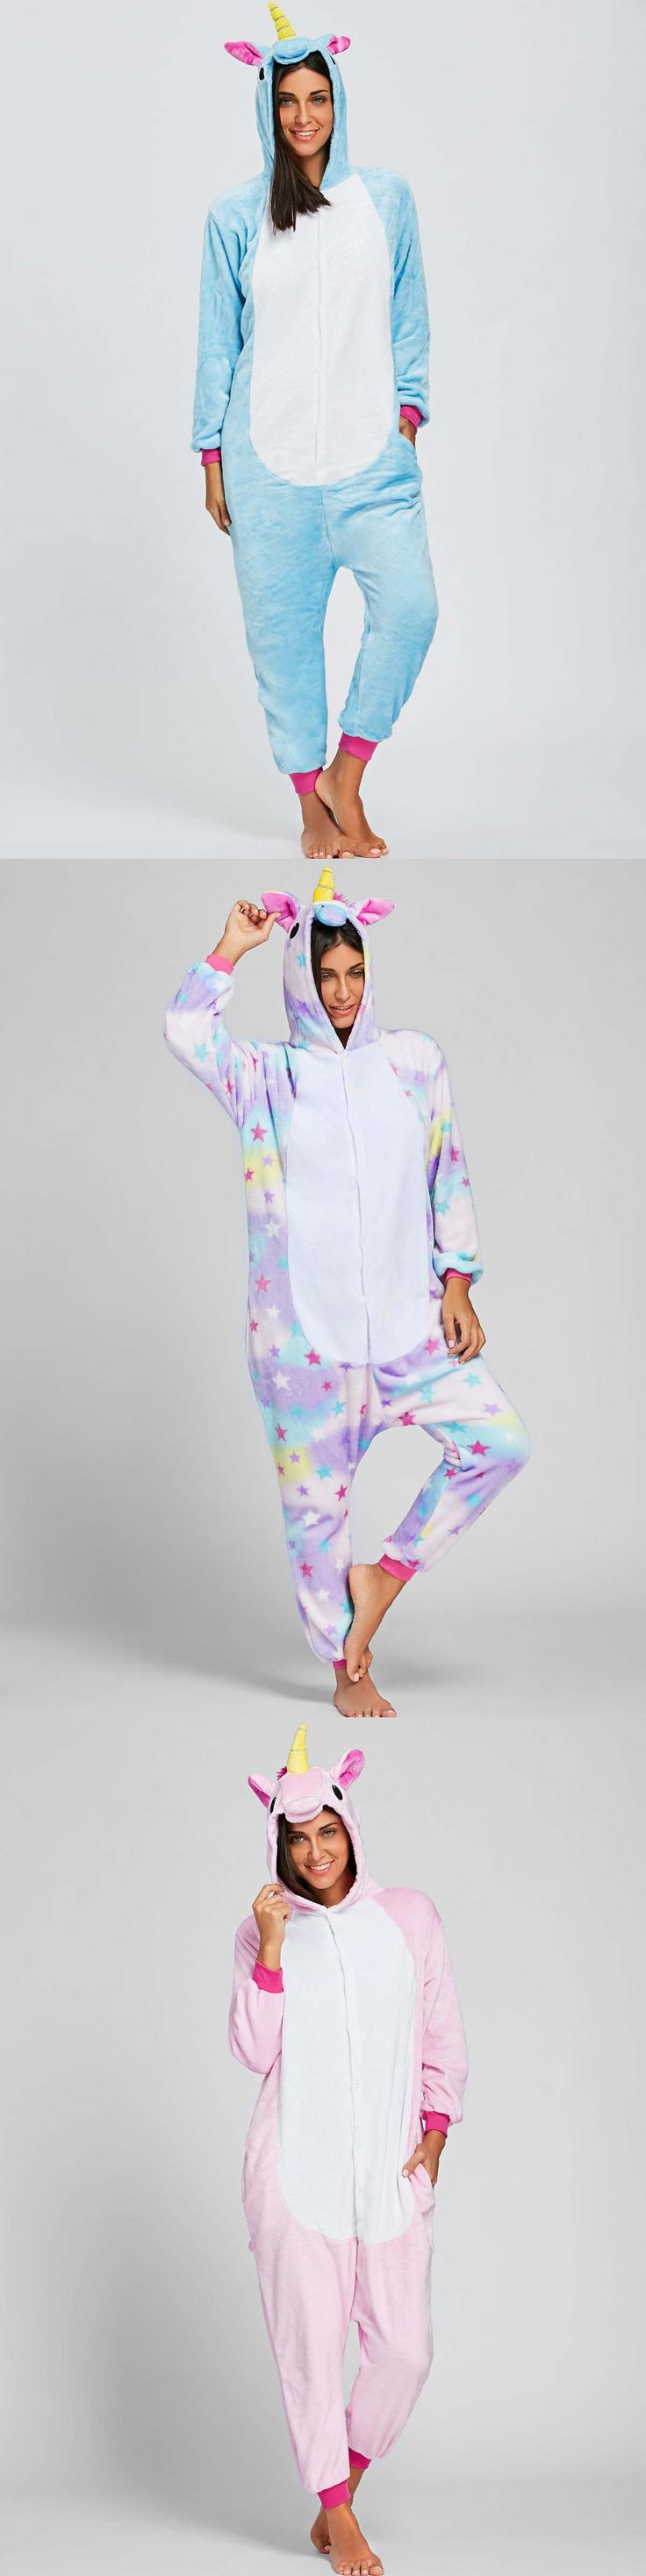 Up to 80% off,Cute Unicorn Animal Onesie Pajama For Adult,rosewholesale,rosewholesale.com,unicorn,cute outfit,cute pajamas,onesie pajama,blue,fall fashion 2017,cozy,comformatable,cheap clothing,#onesie pajama #wholesale #pajamas,halloween,christmas clothings,christmas gift idea,extra 10% off coupon code:HALLOWEEN